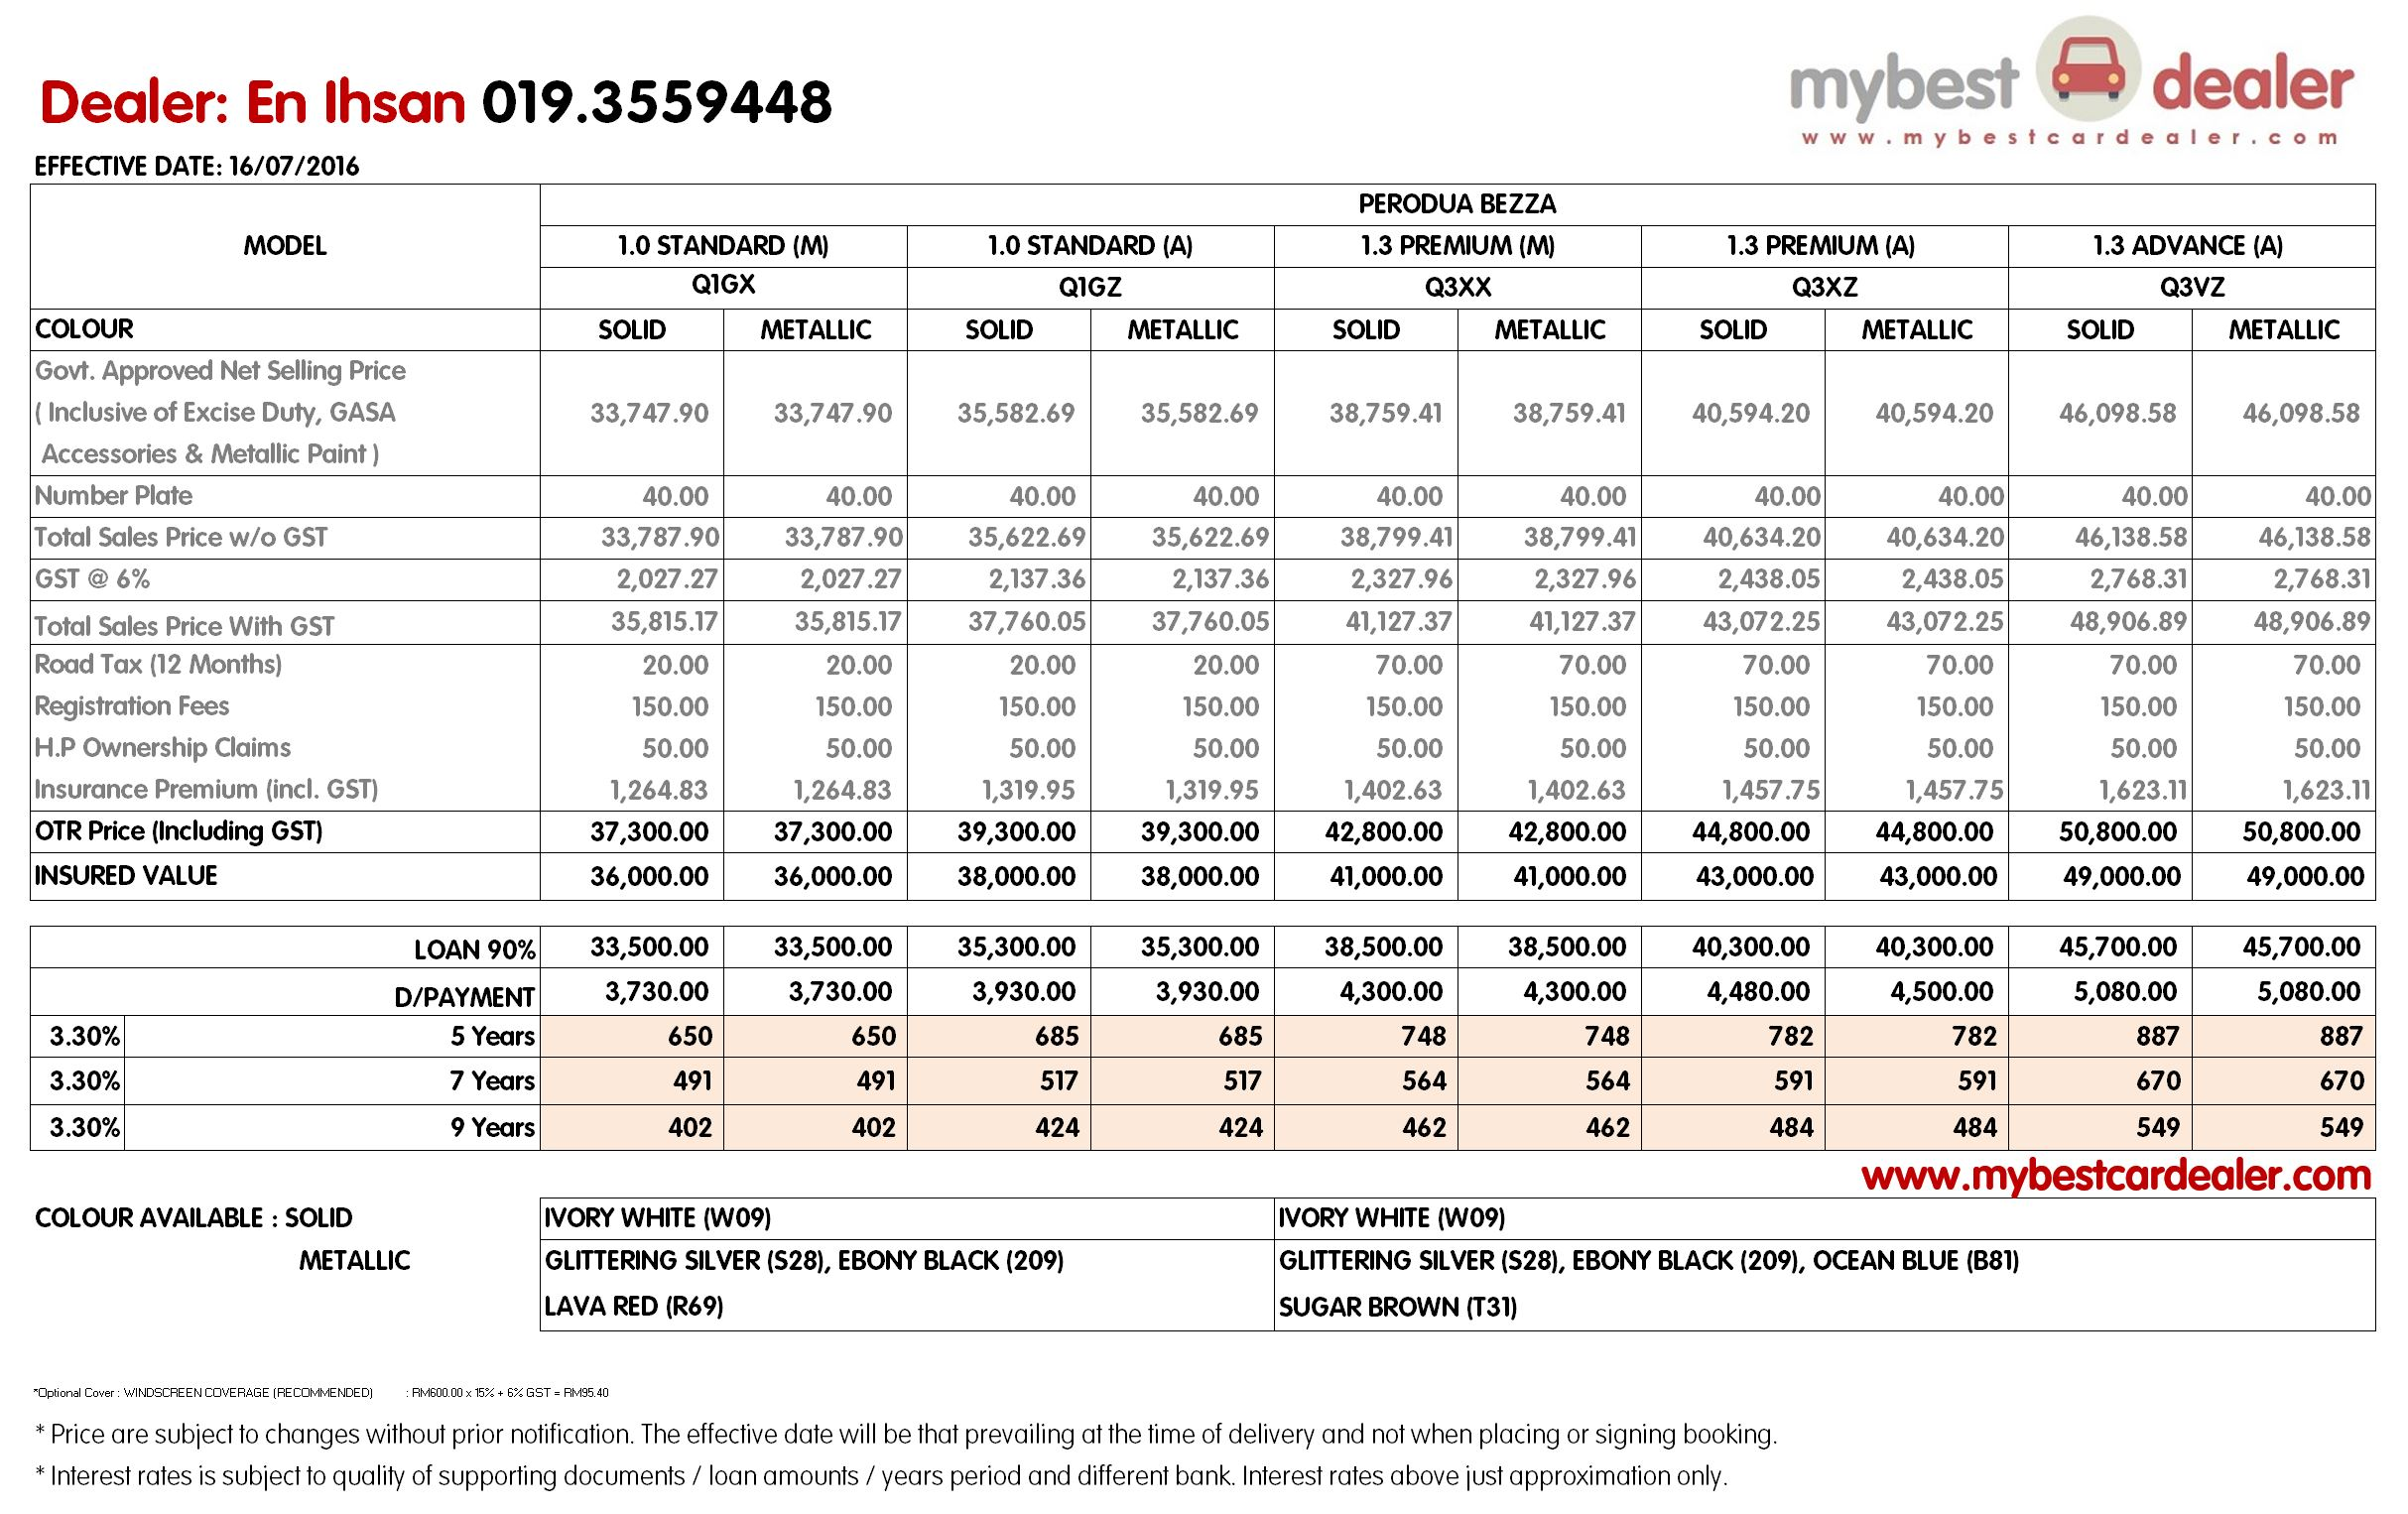 Perodua Bezza Price List 2016